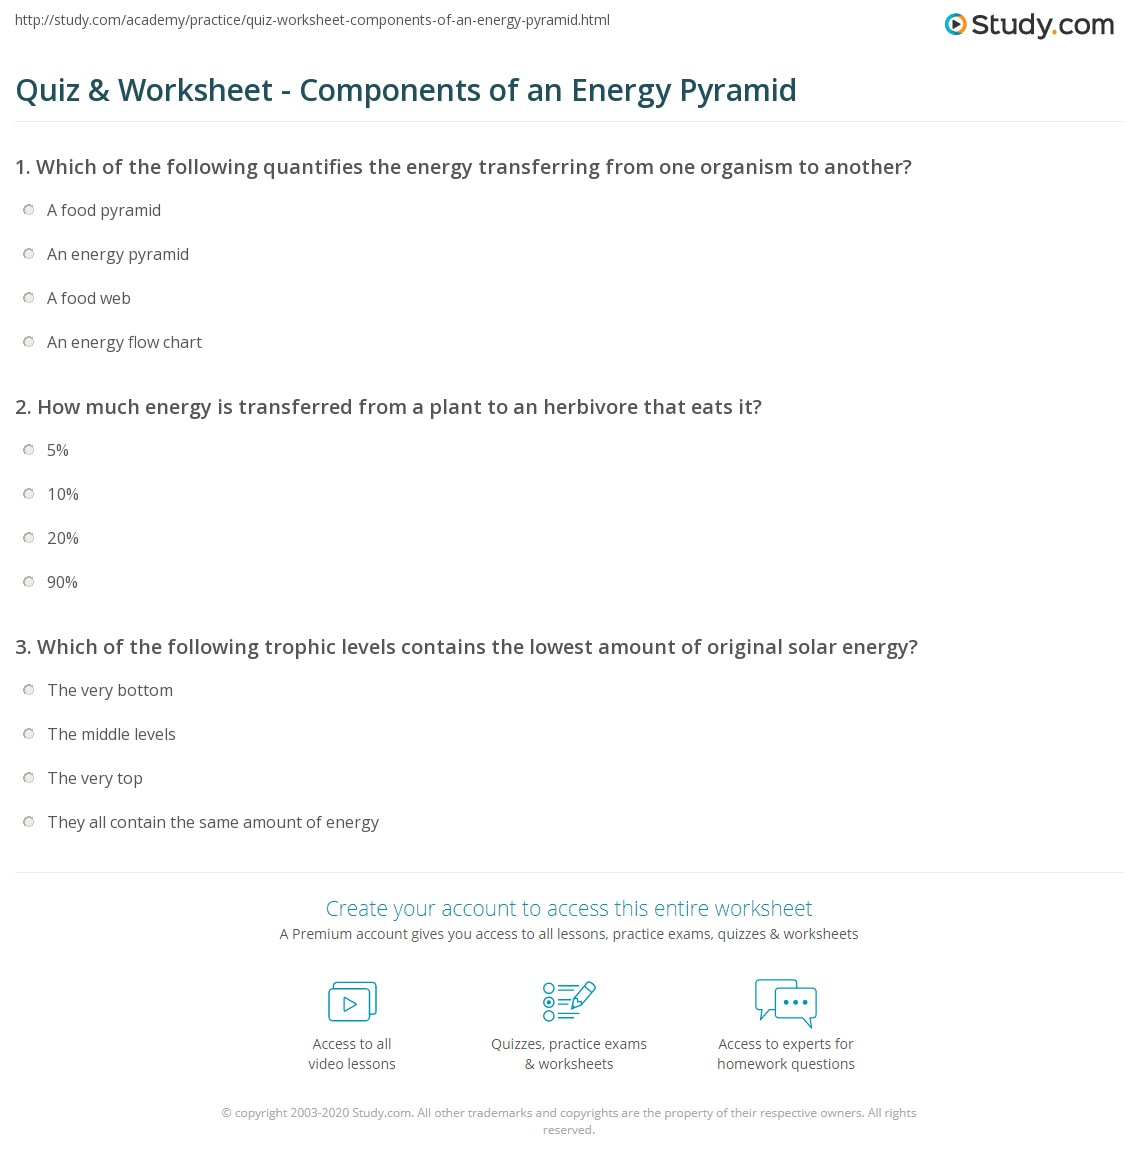 Quiz & Worksheet - Components of an Energy Pyramid | Study.com